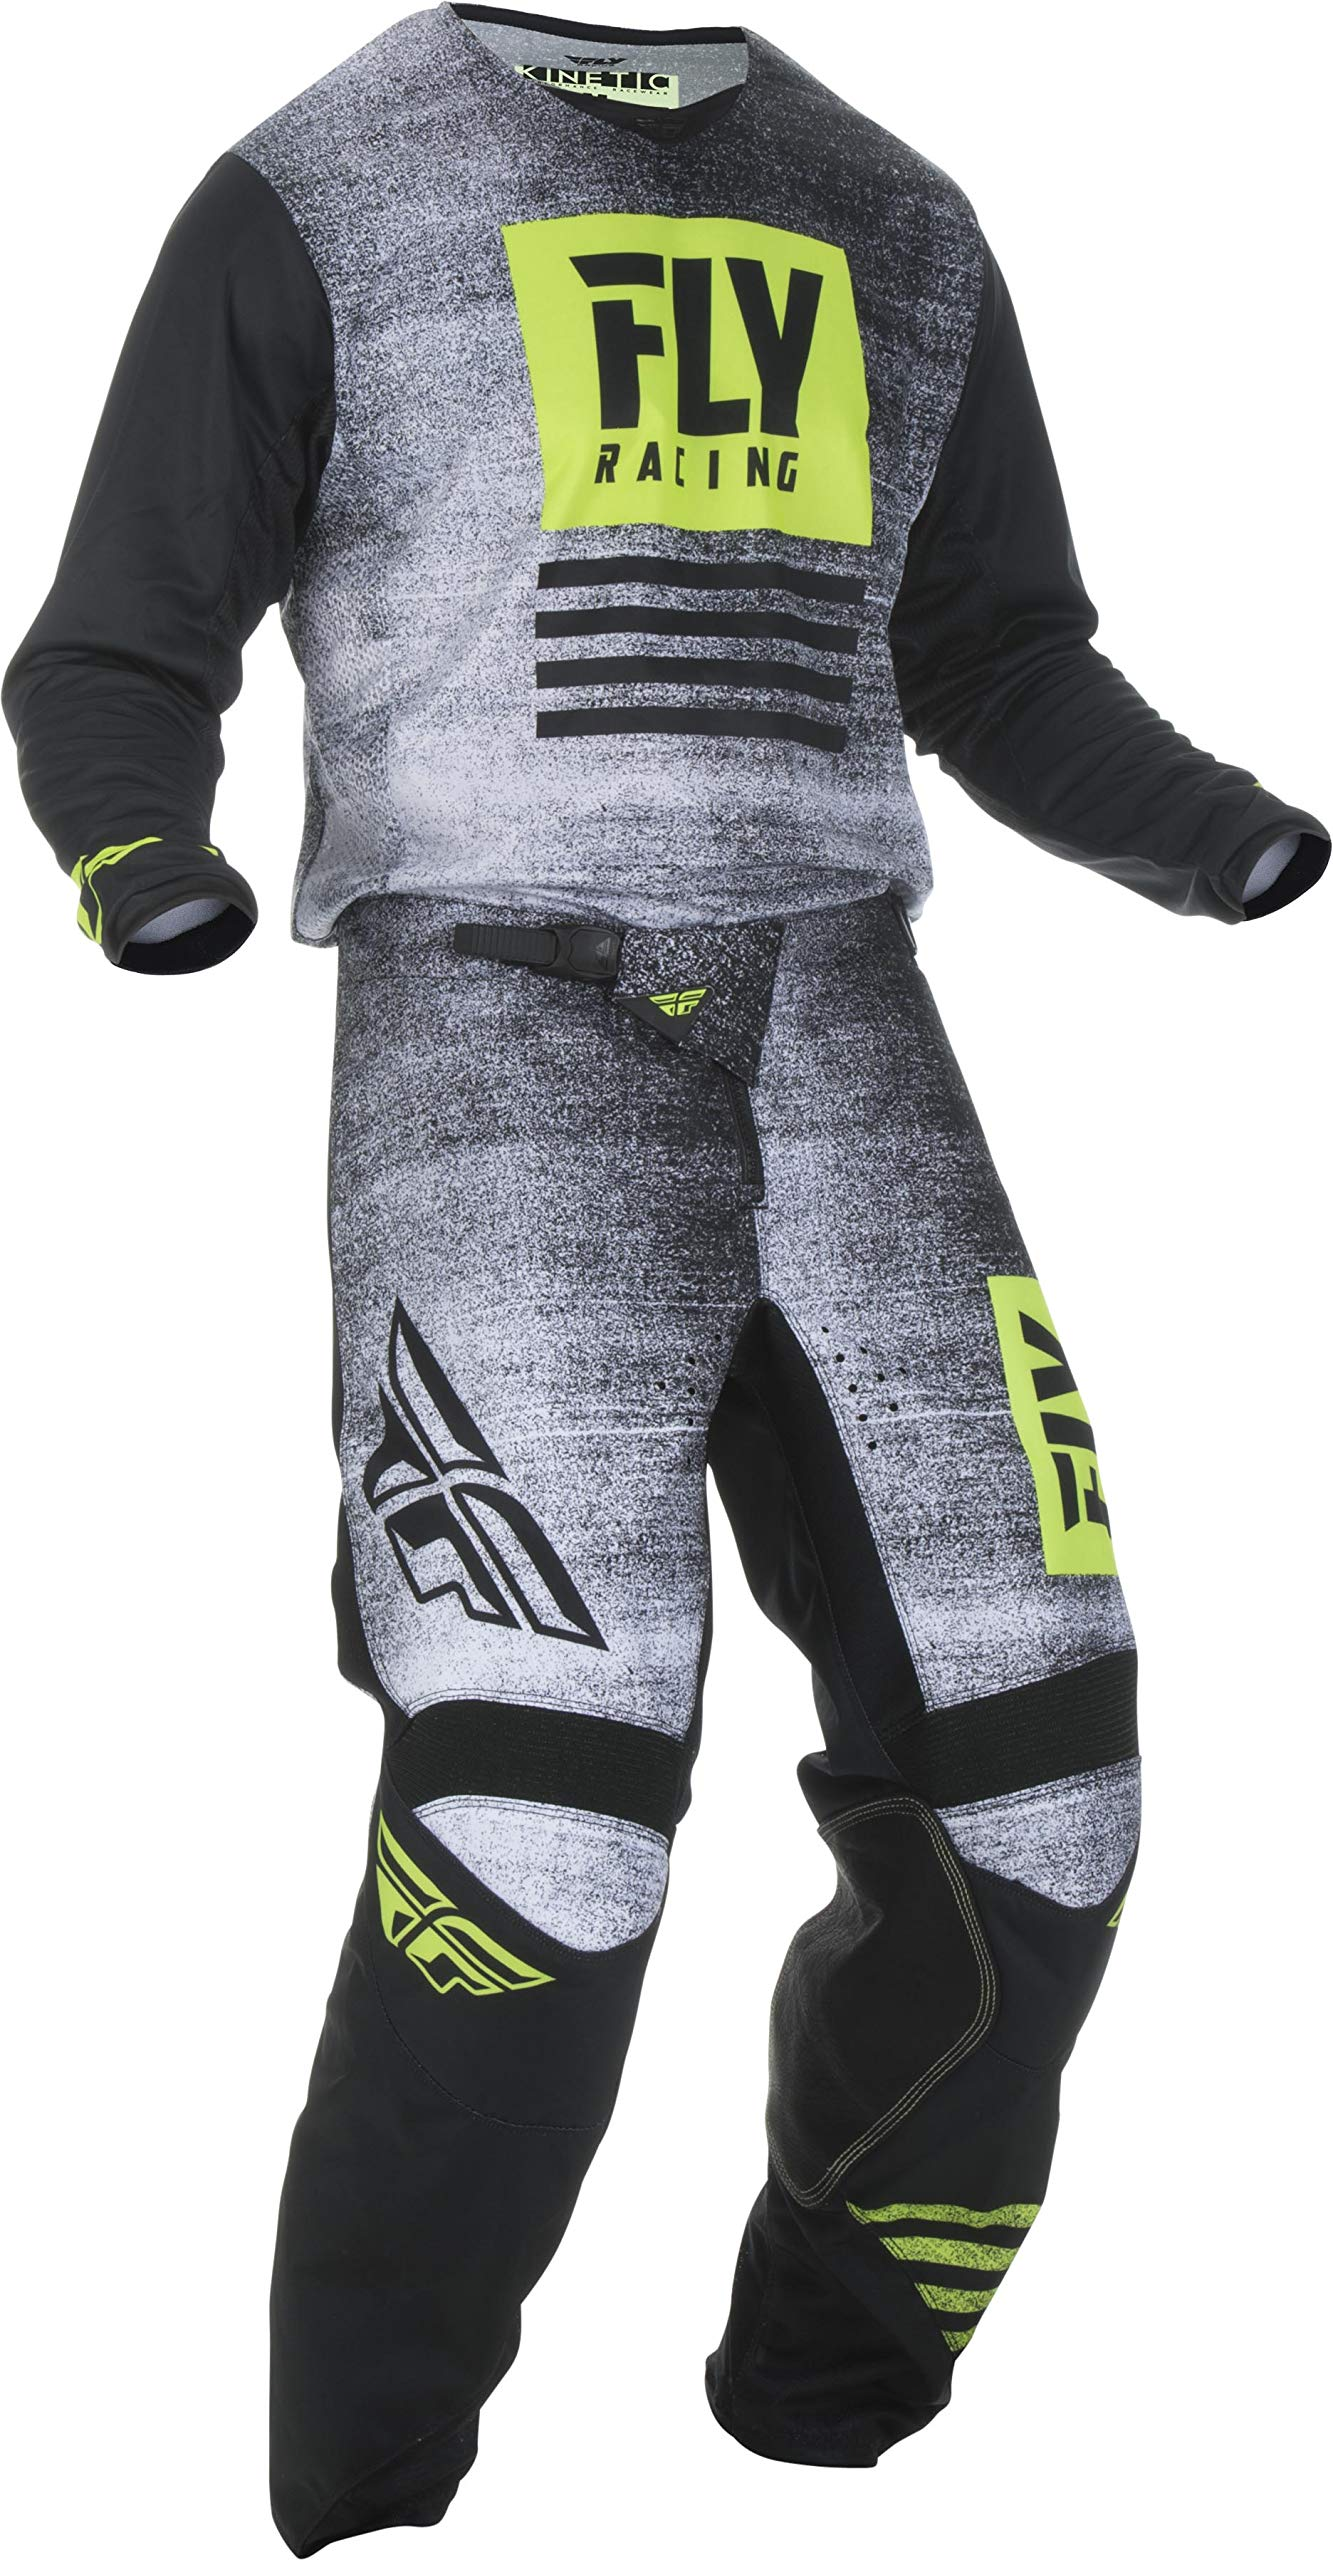 Fly Racing - 2019 Kinetic Noiz (Mens Black & HI-VIS X-Large/36W) MX Riding Gear Combo Set, Motocross Off-Road Dirt Bike Light Weight Durable Jersey & Mesh Comfort Liner Stretch Pre Shaped Knees Pant